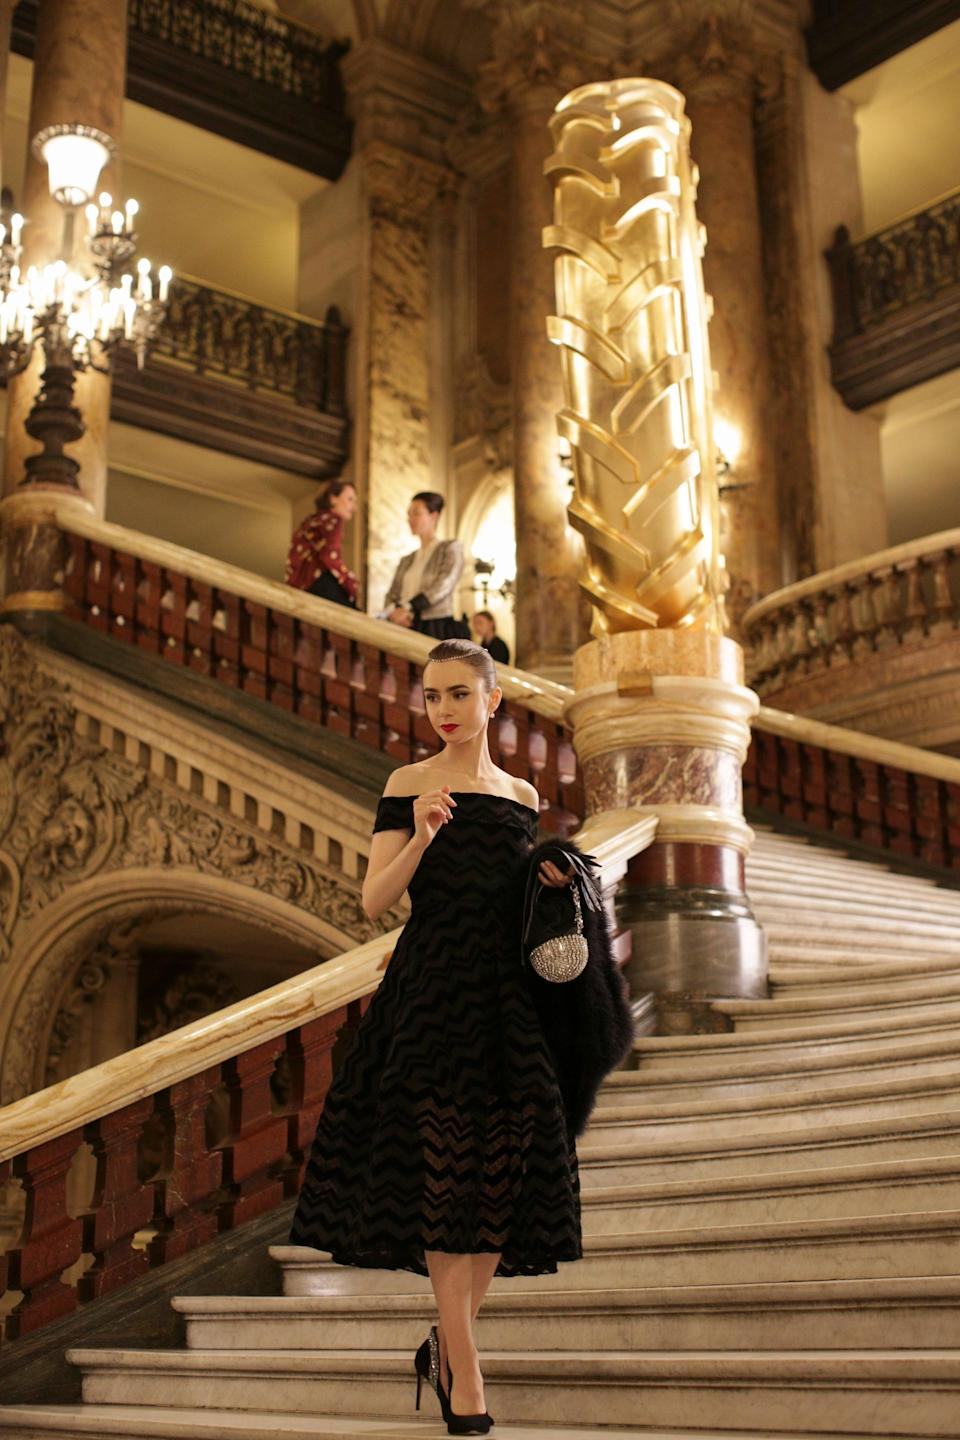 In an homage to Audrey Hepburn in <em>Funny Face</em>, Emily wears a stunning strapless black dress by Christian Siriano and crystal-adorned pumps to the opera. She rounds out the look with Agnelle gloves, vintage purse and fur, and La Compagnie du Costume jewels.